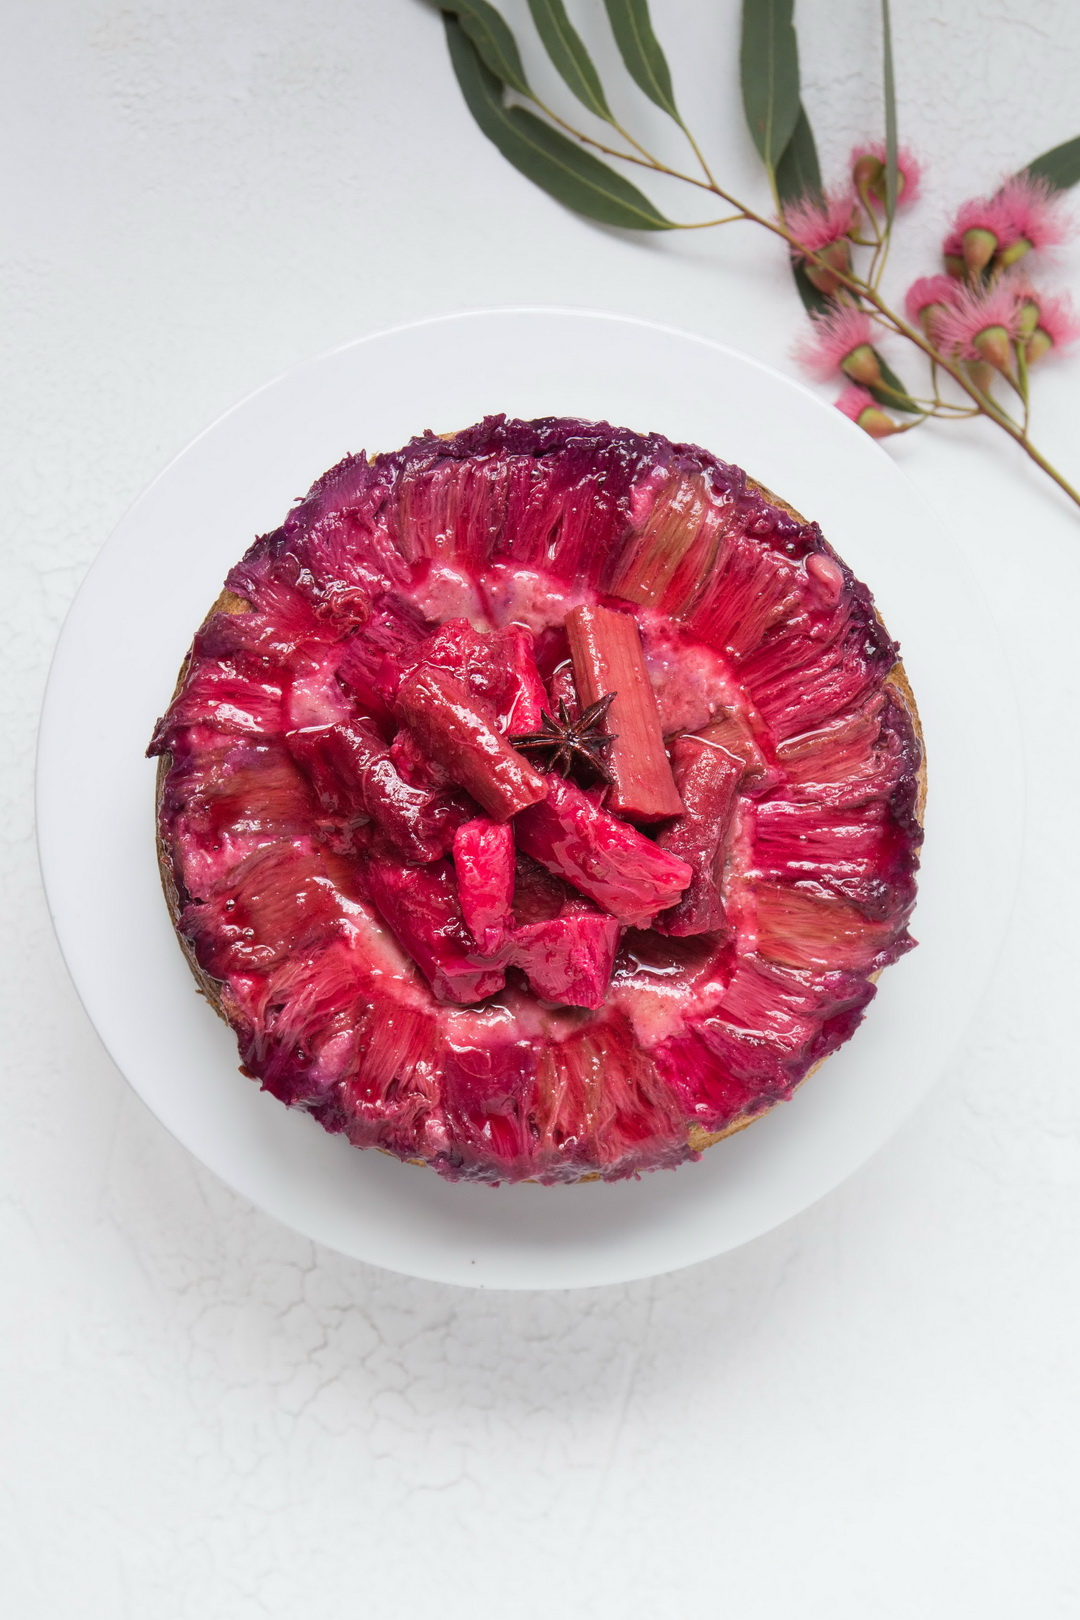 The Urban Nest Rhubarb, Almond and Star Anise Cake